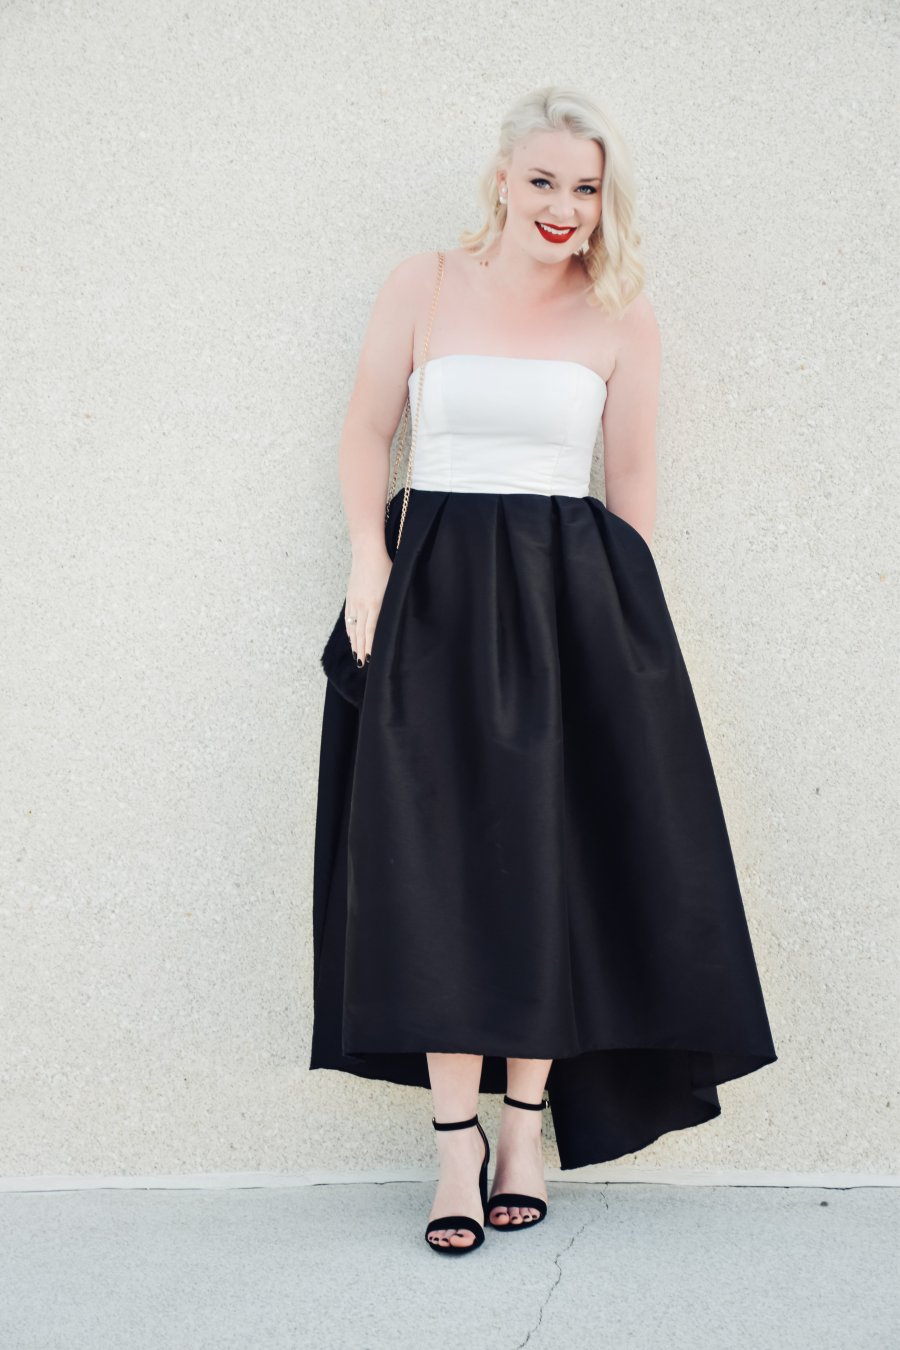 black-and-white-dress-8-of-23